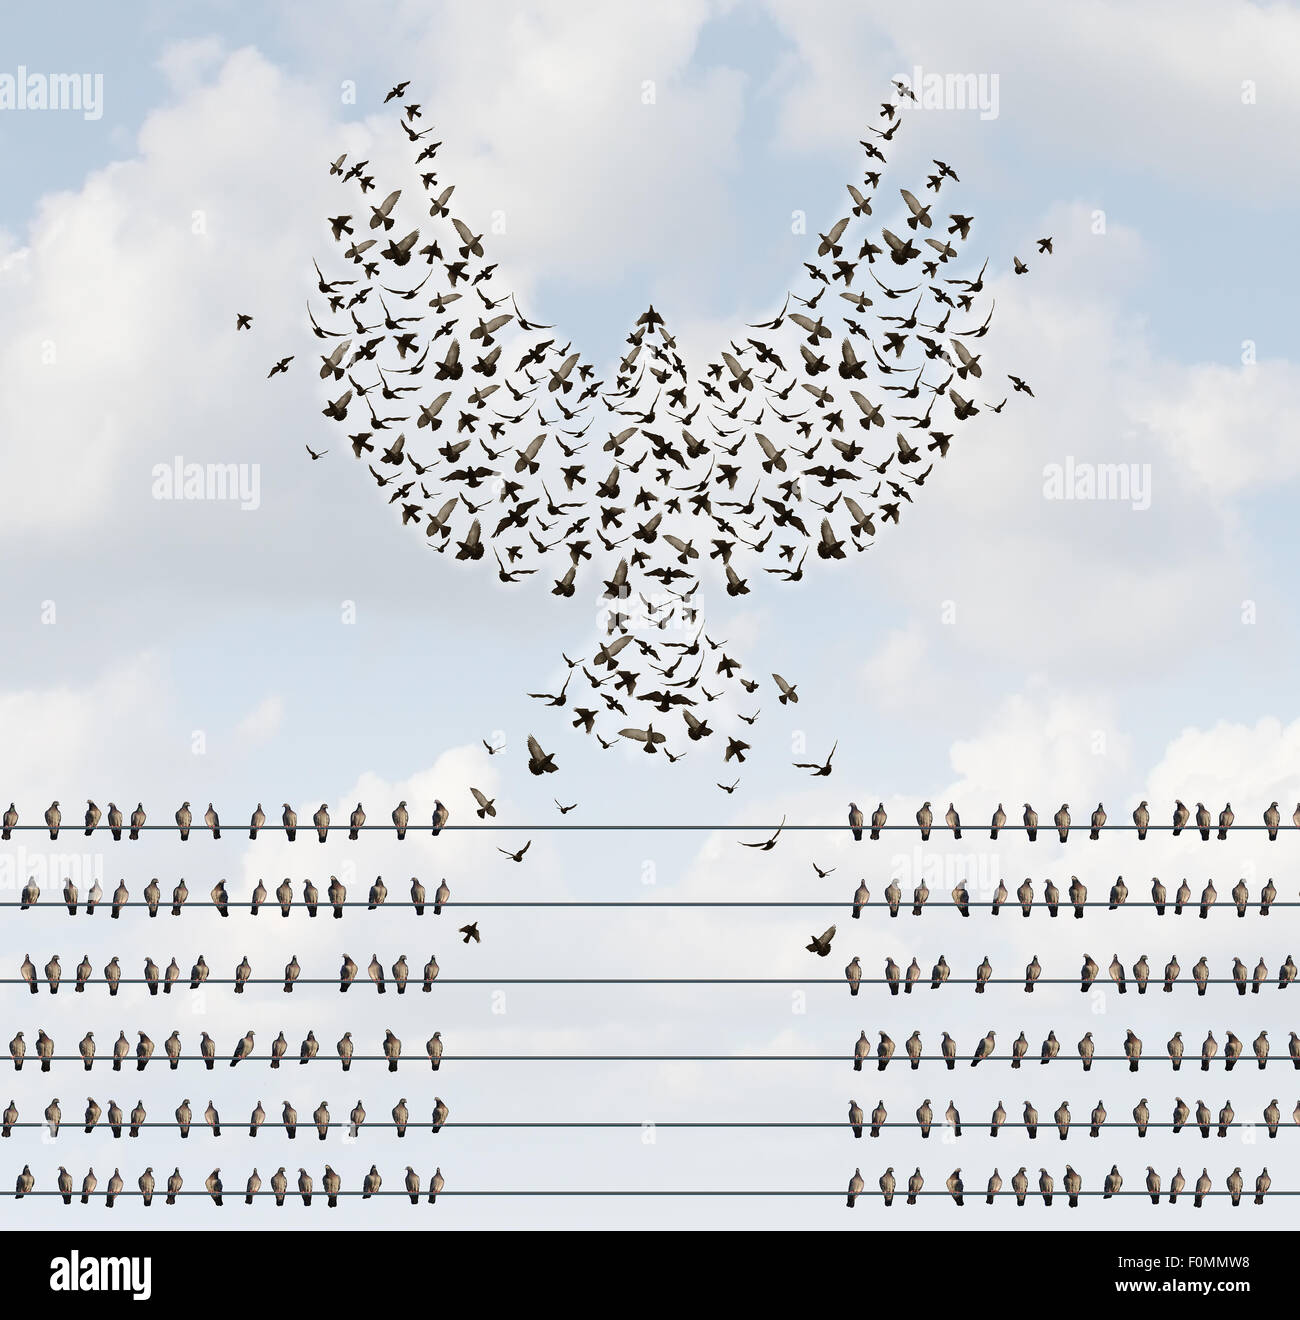 Successful organization business concept as a group of birds on a wire with a team flying away and forming a flying - Stock Image